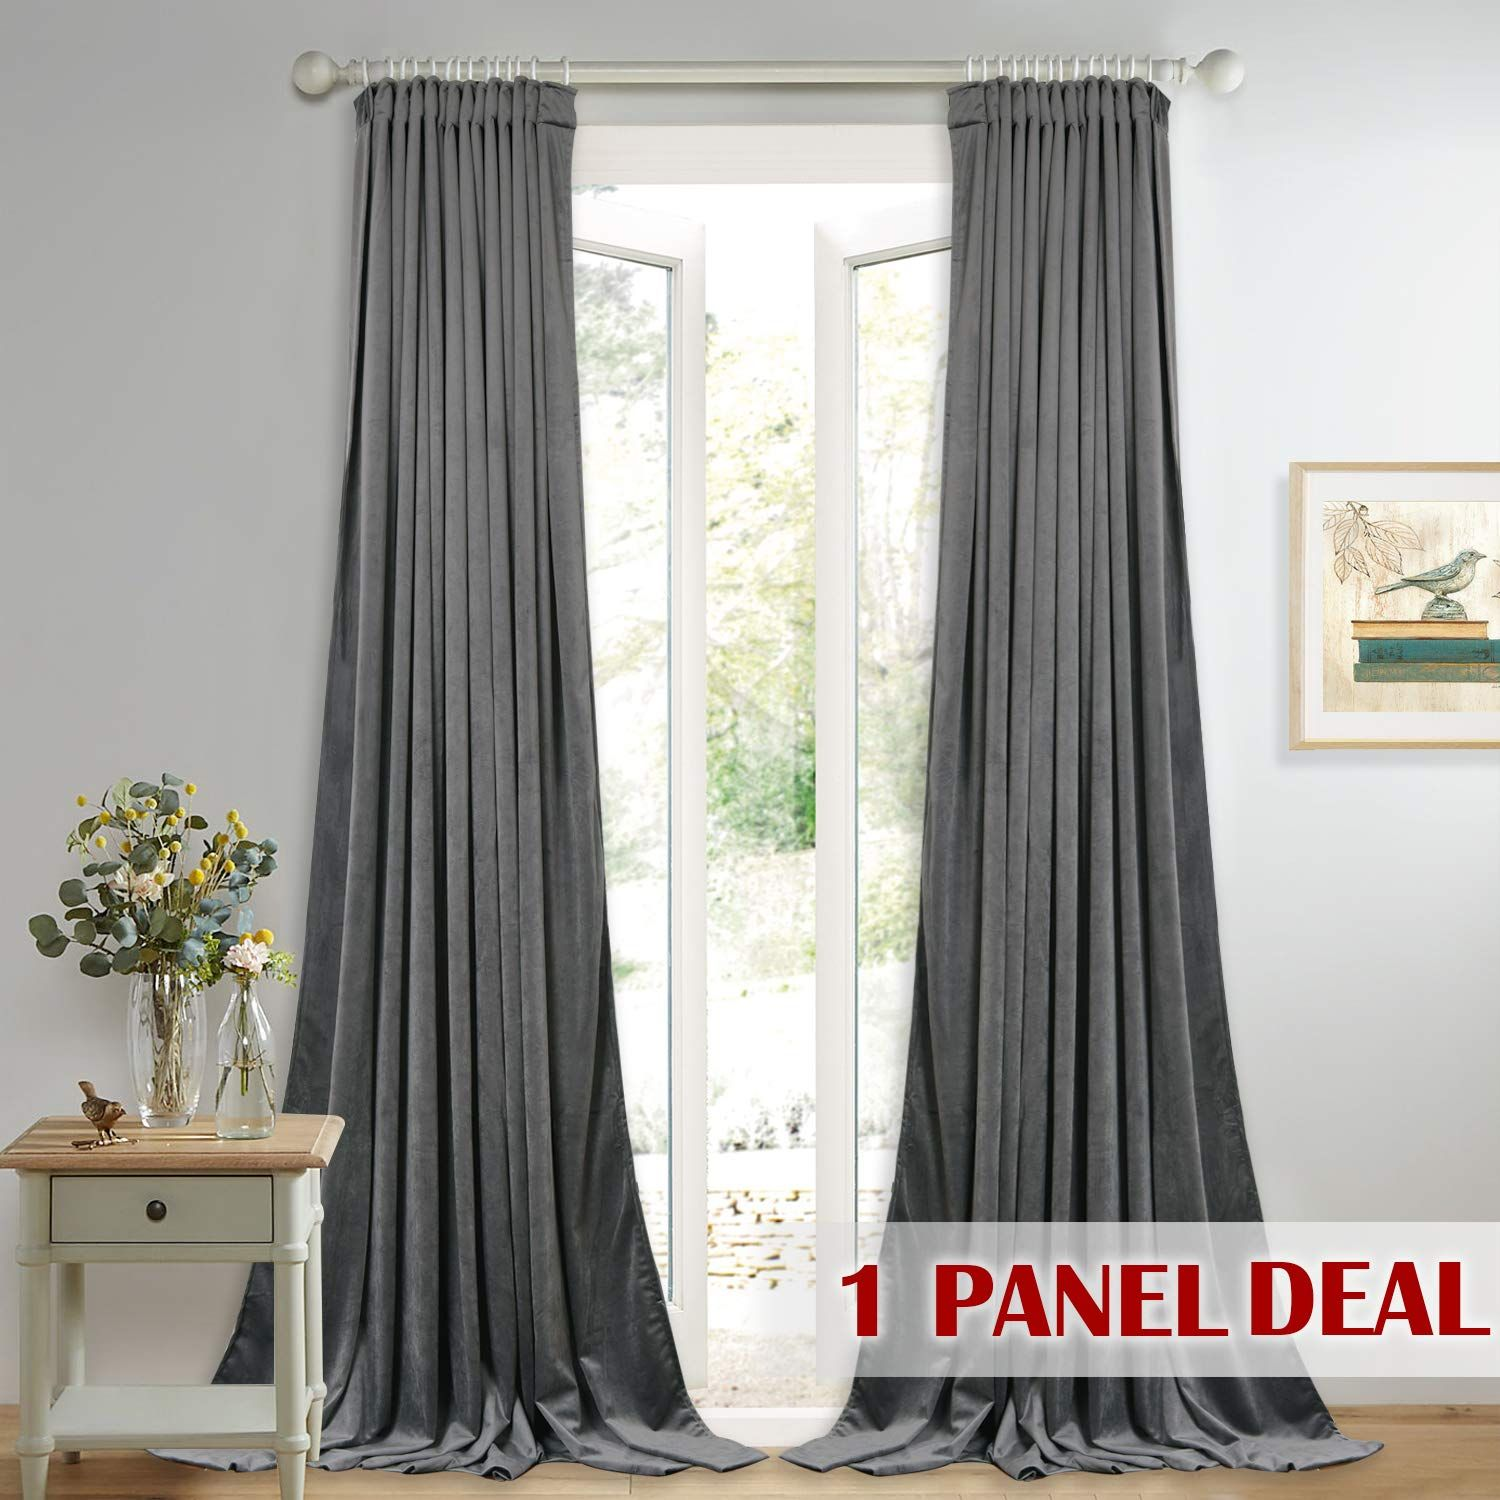 Grey Velvet Curtains For Sliding Door Sunlight And Heat Redu